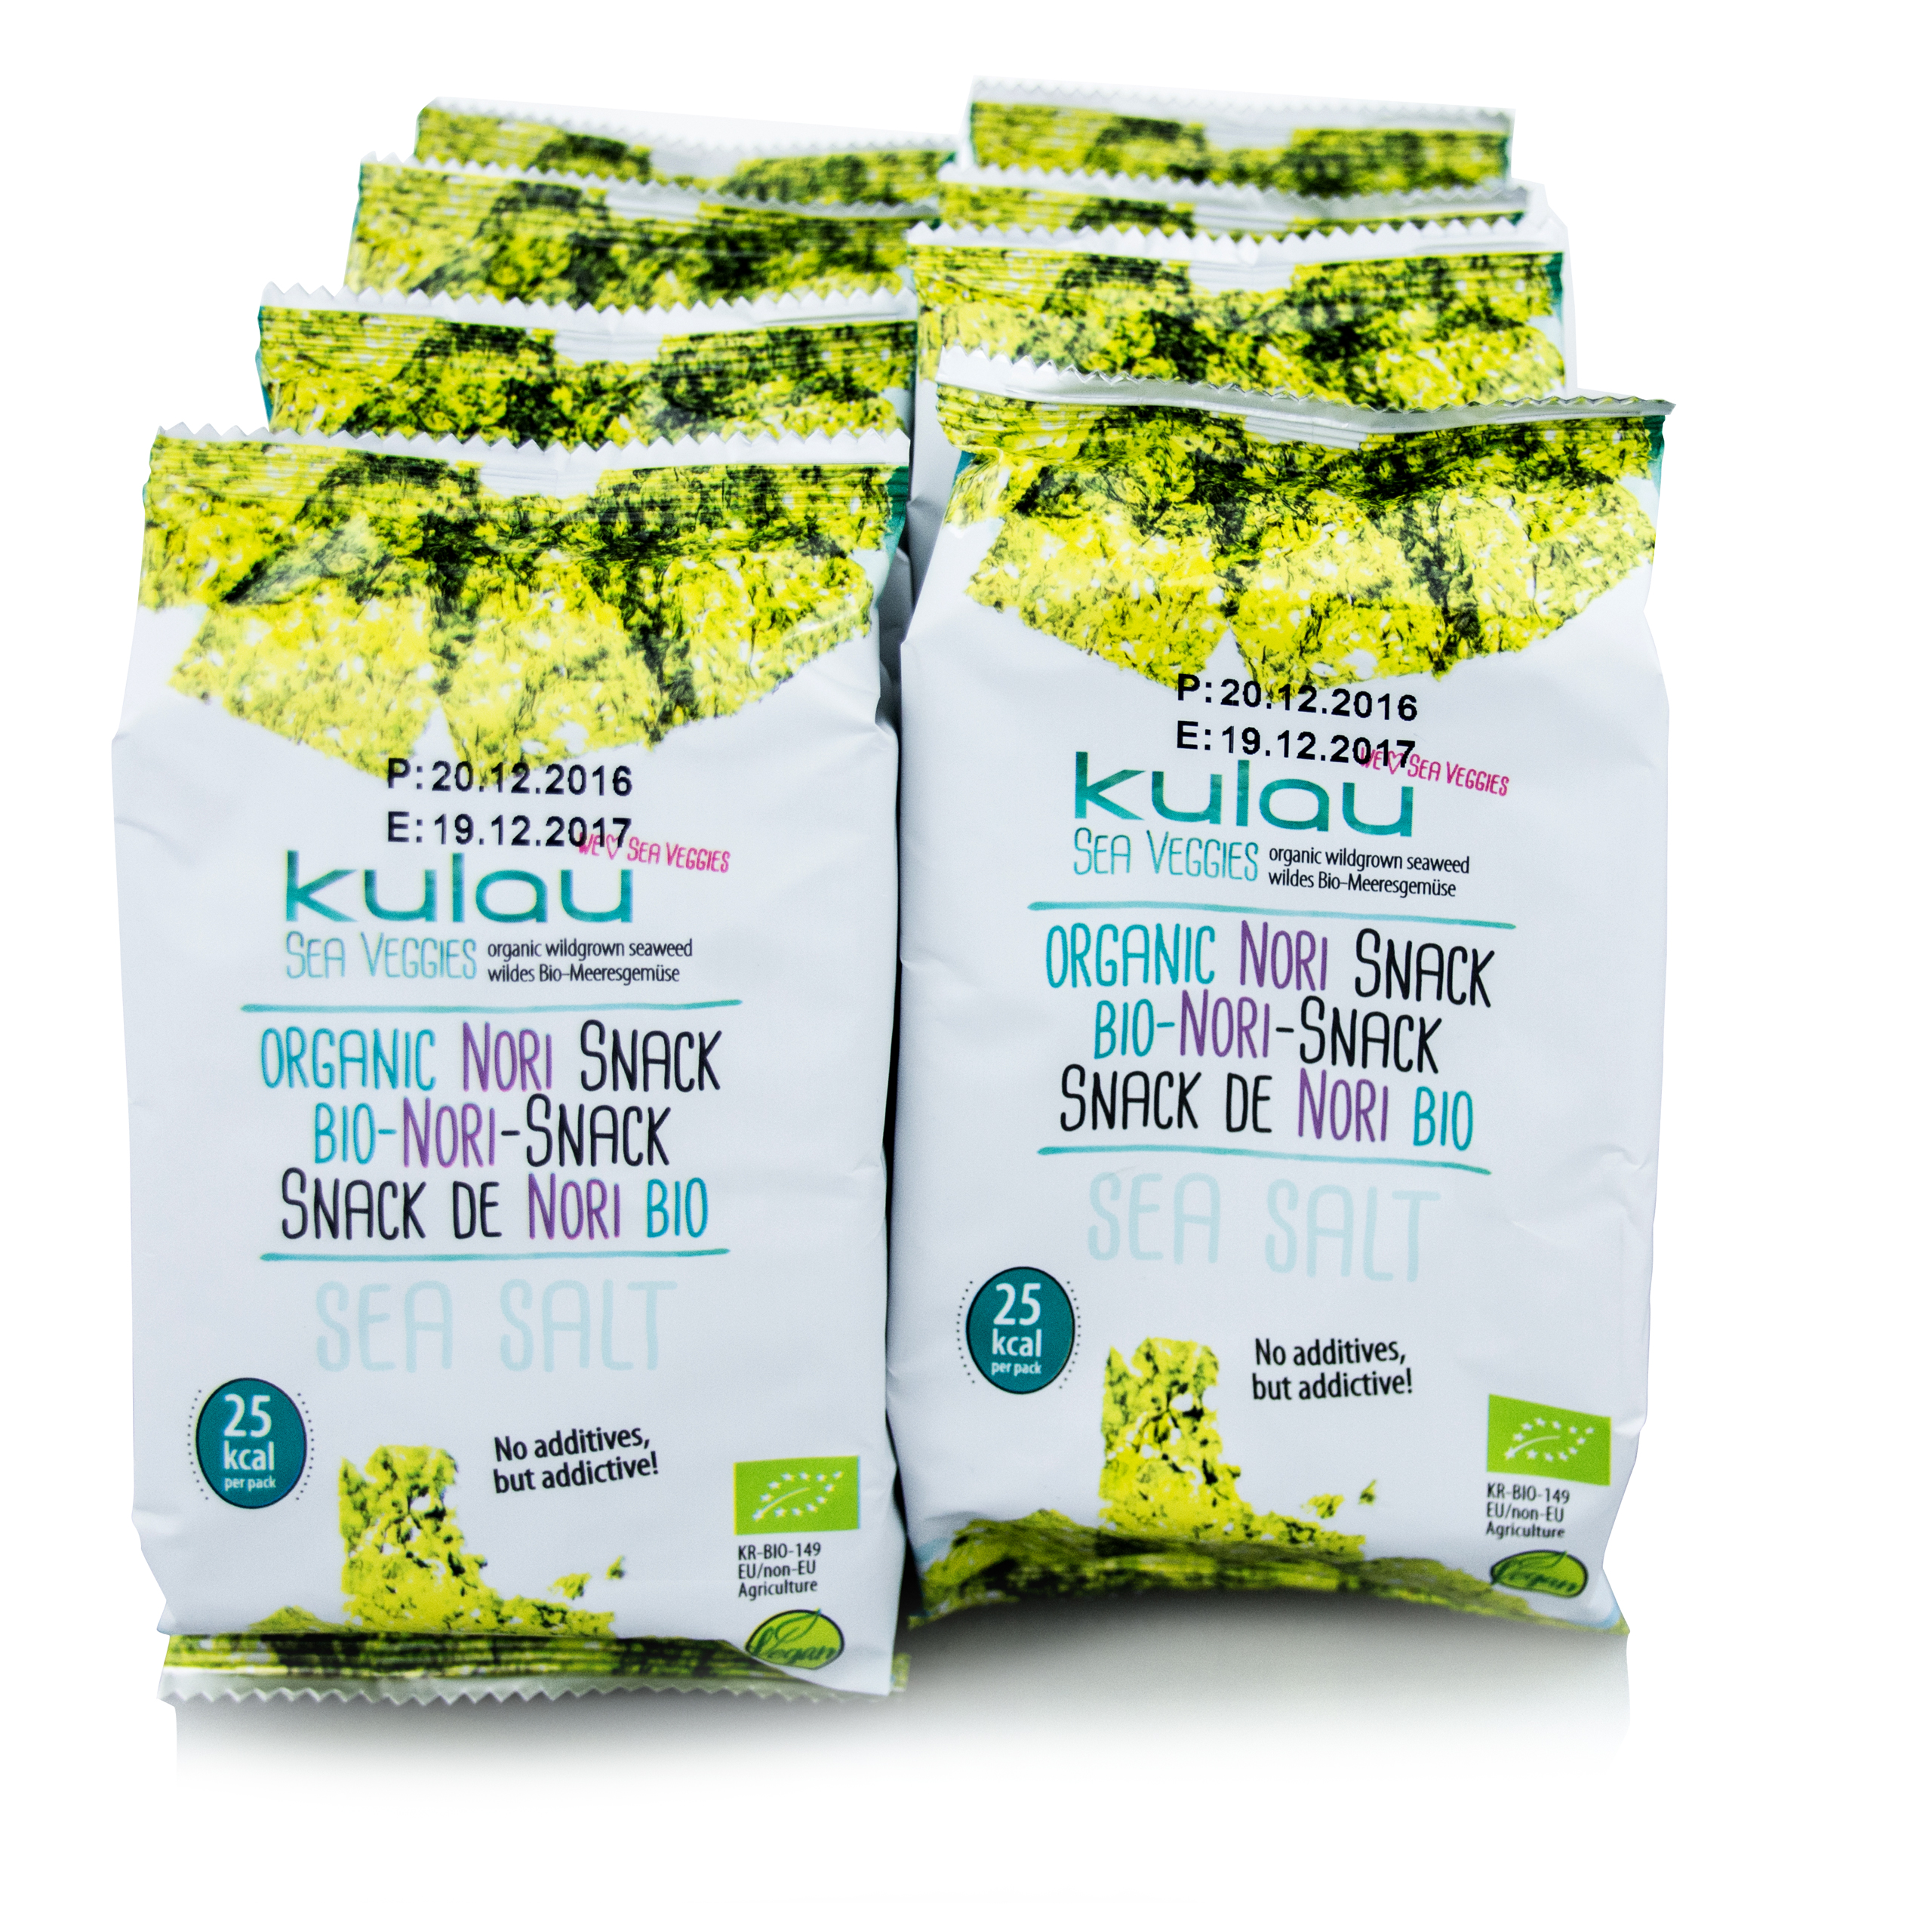 8er Pack des KULAU Bio-Nori-Snacks Sea Salt